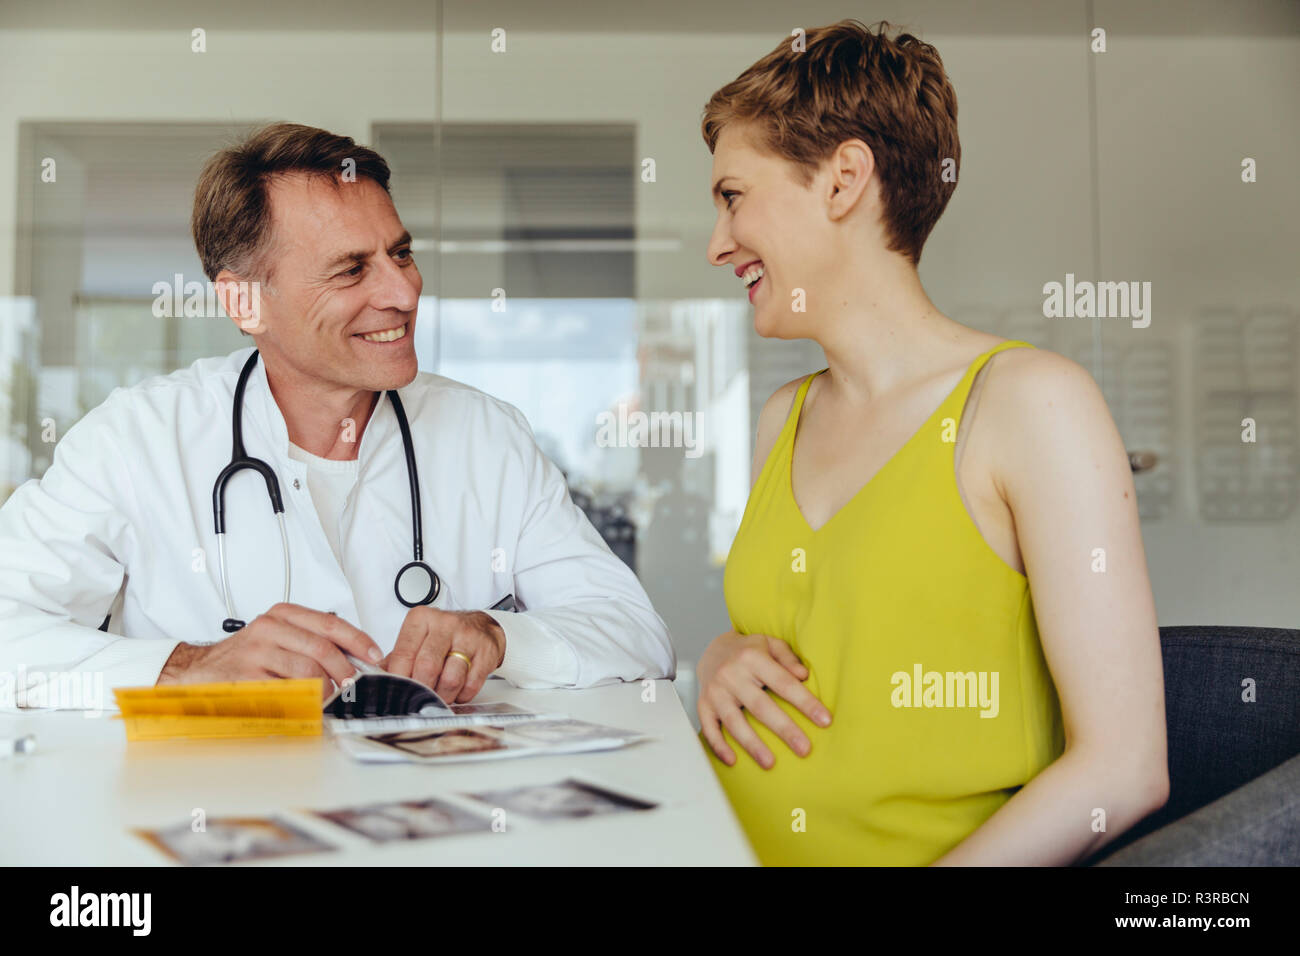 Pregnant woman discussing ultrasonic scans with her doctor - Stock Image